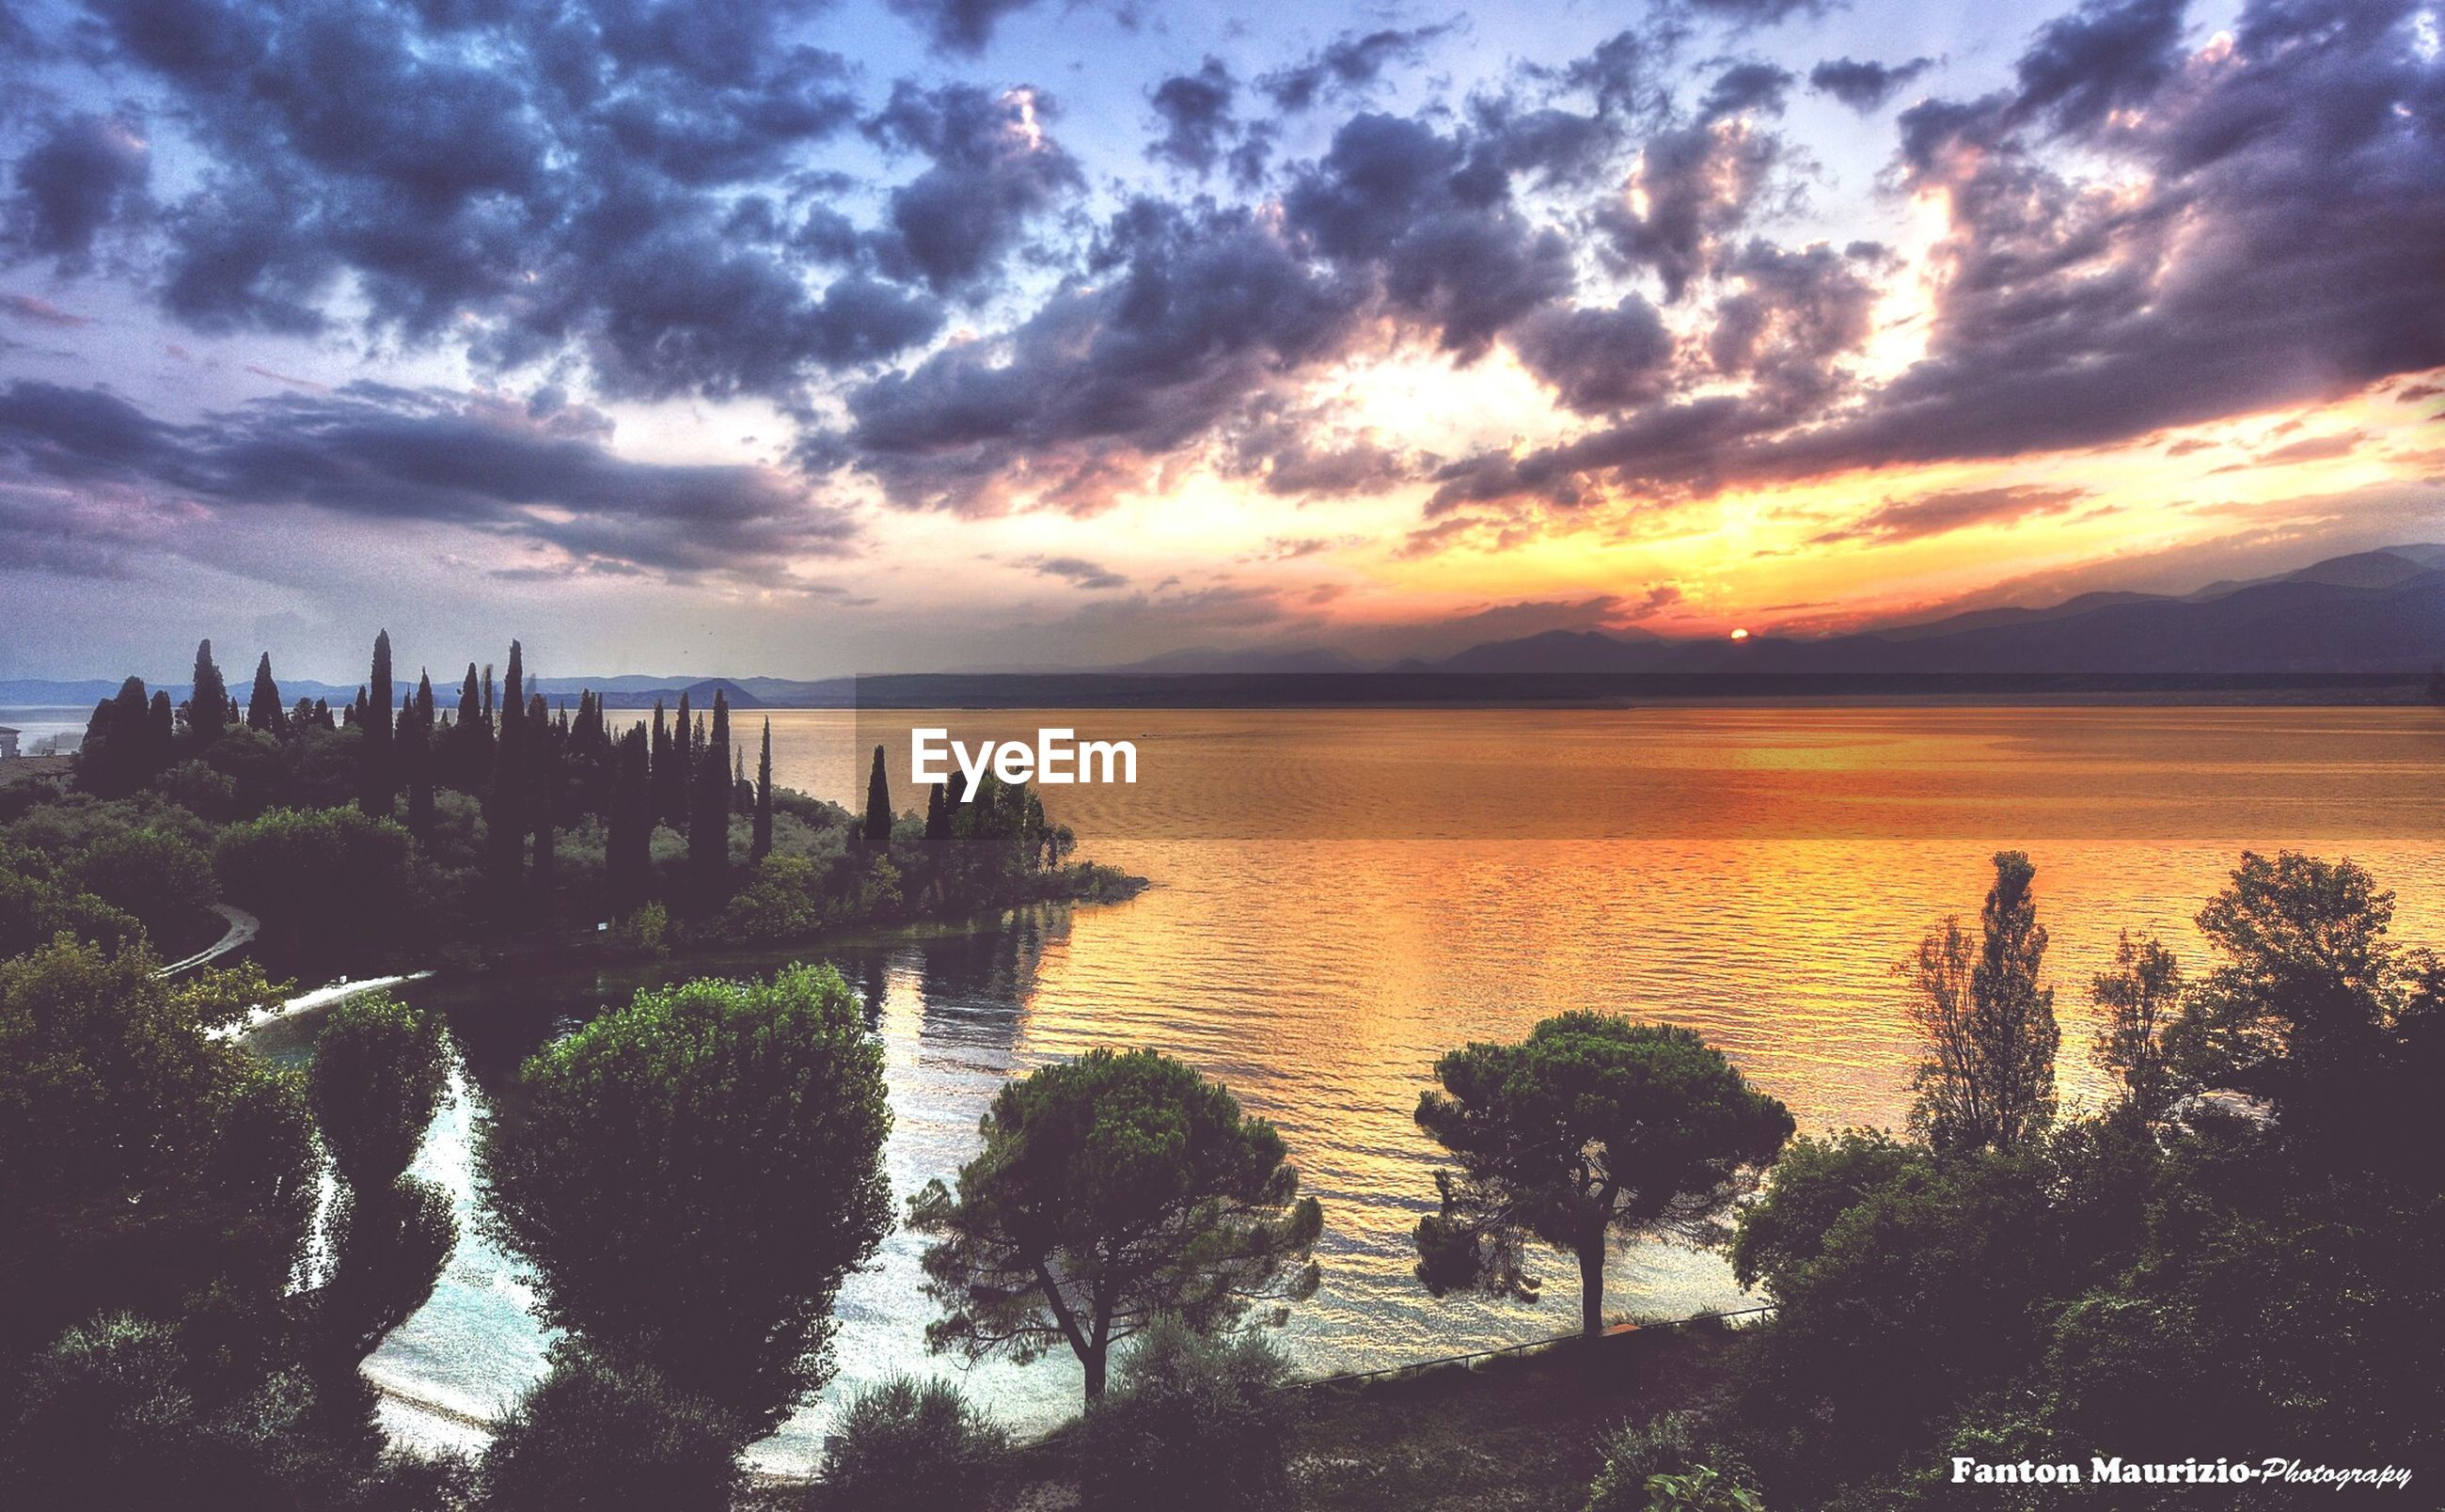 water, sunset, sea, sky, tranquil scene, horizon over water, tranquility, scenics, beauty in nature, cloud - sky, nature, idyllic, reflection, cloudy, cloud, orange color, beach, outdoors, calm, non-urban scene